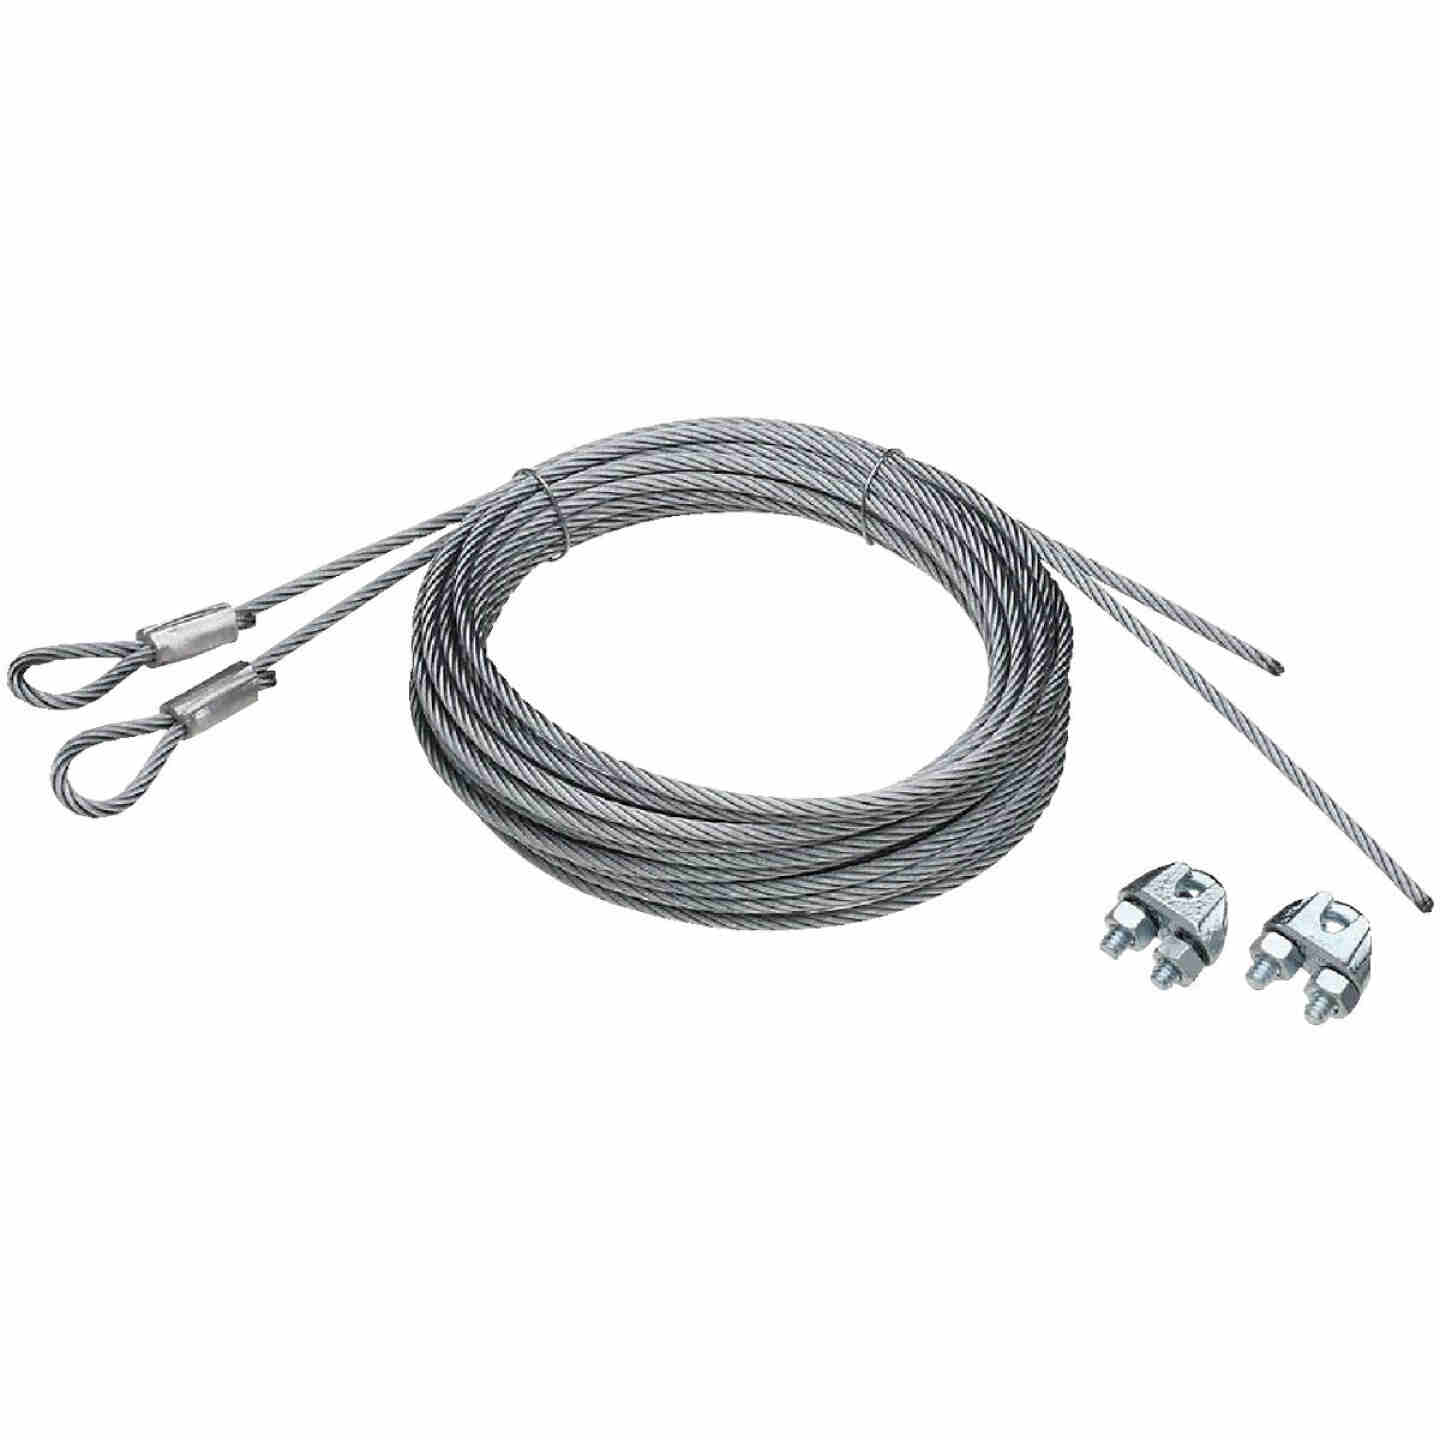 Prime-Line 5/32 In. Galvanized Carbon Steel Extension Cable Image 1